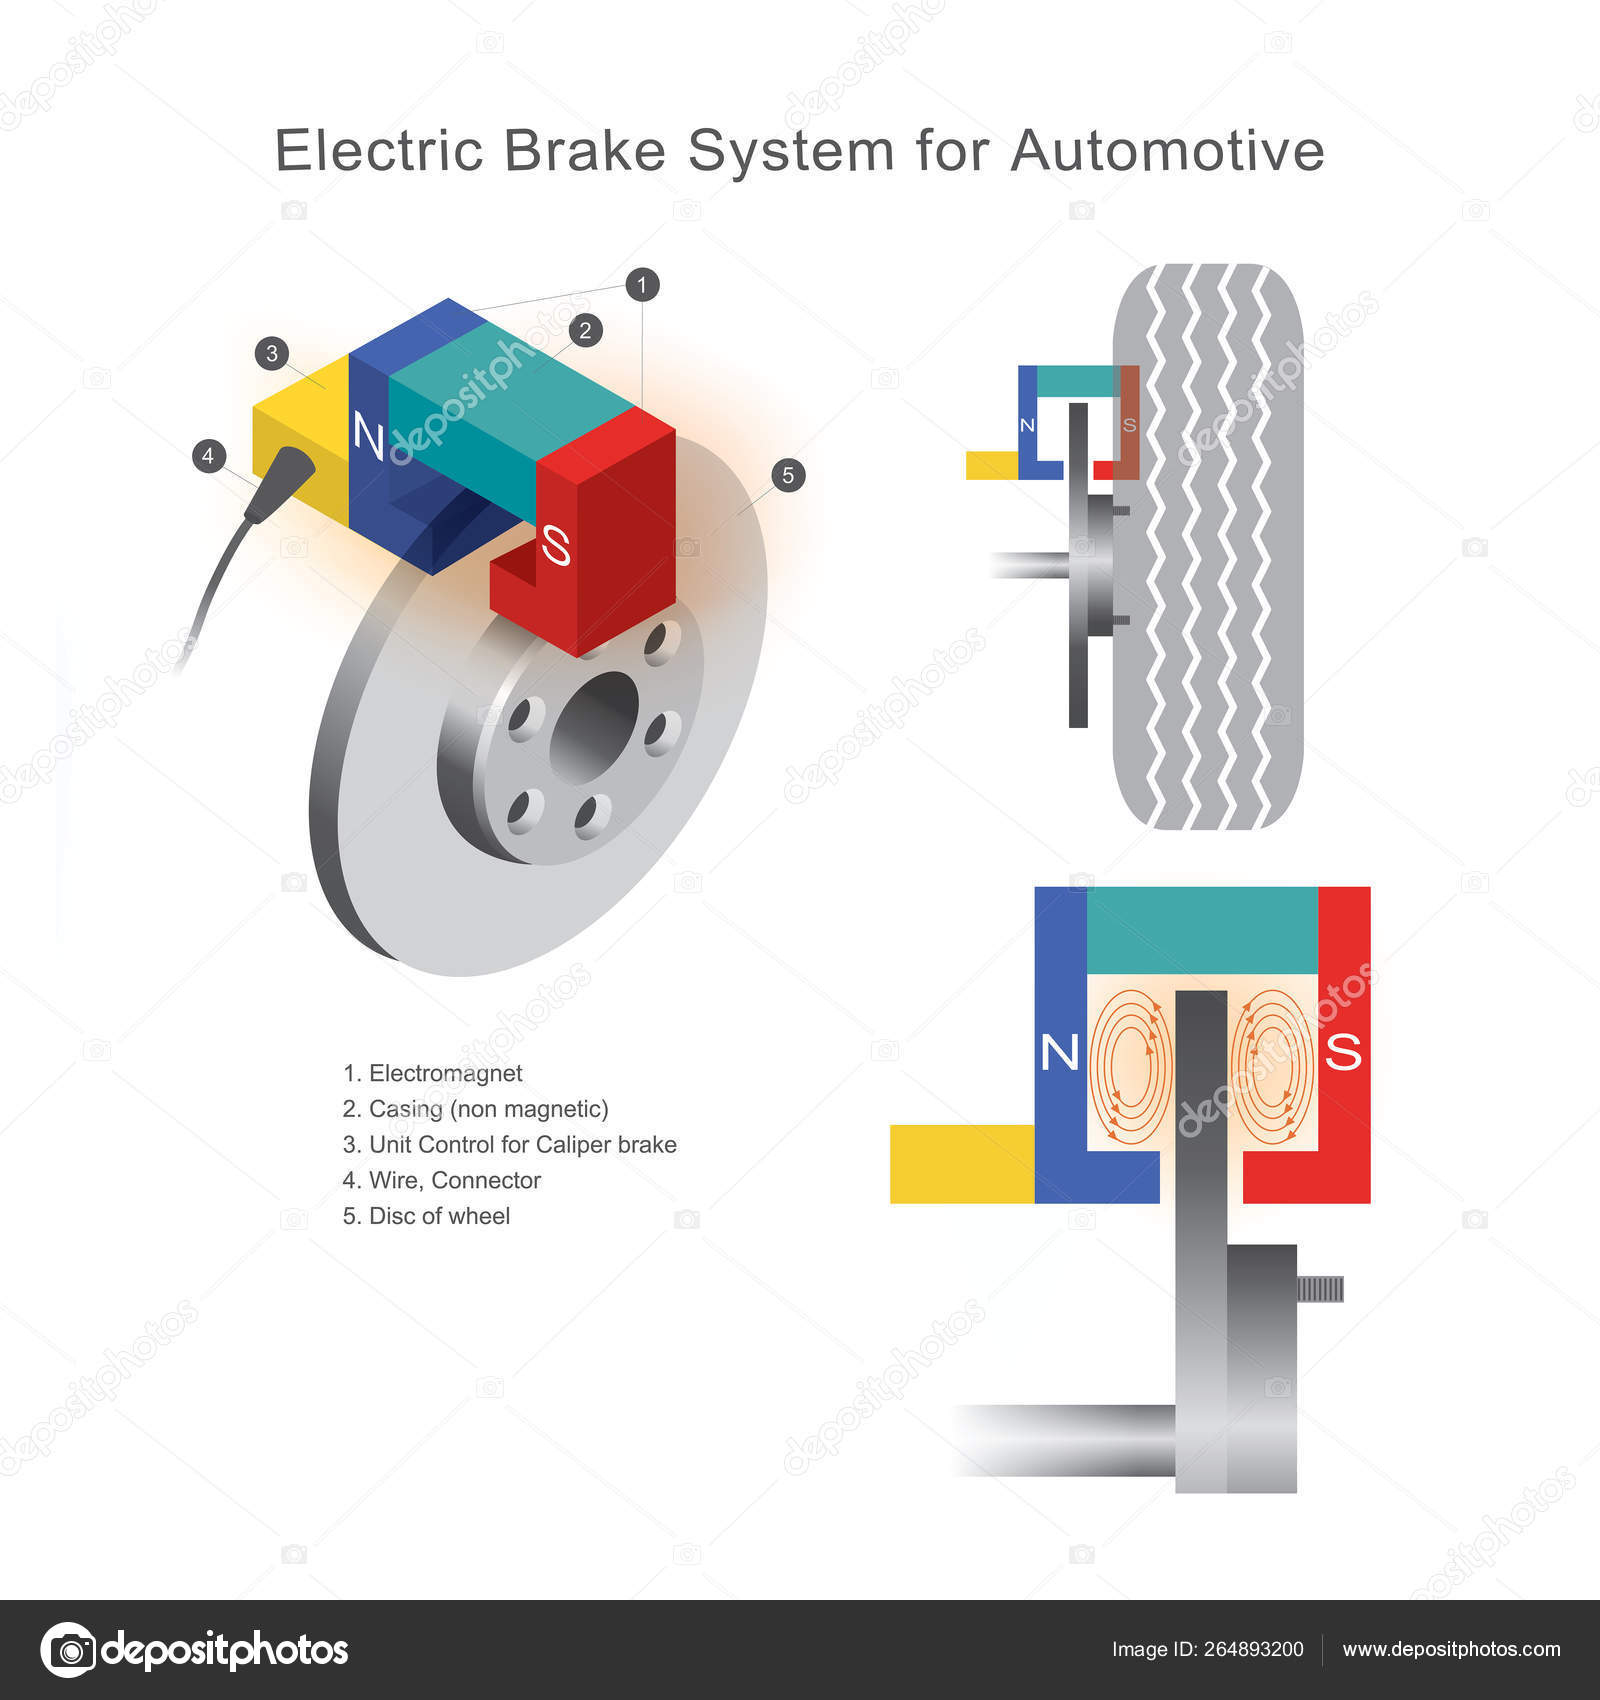 Electric Brake System for Automotive  — Stock Vector © pattarawit